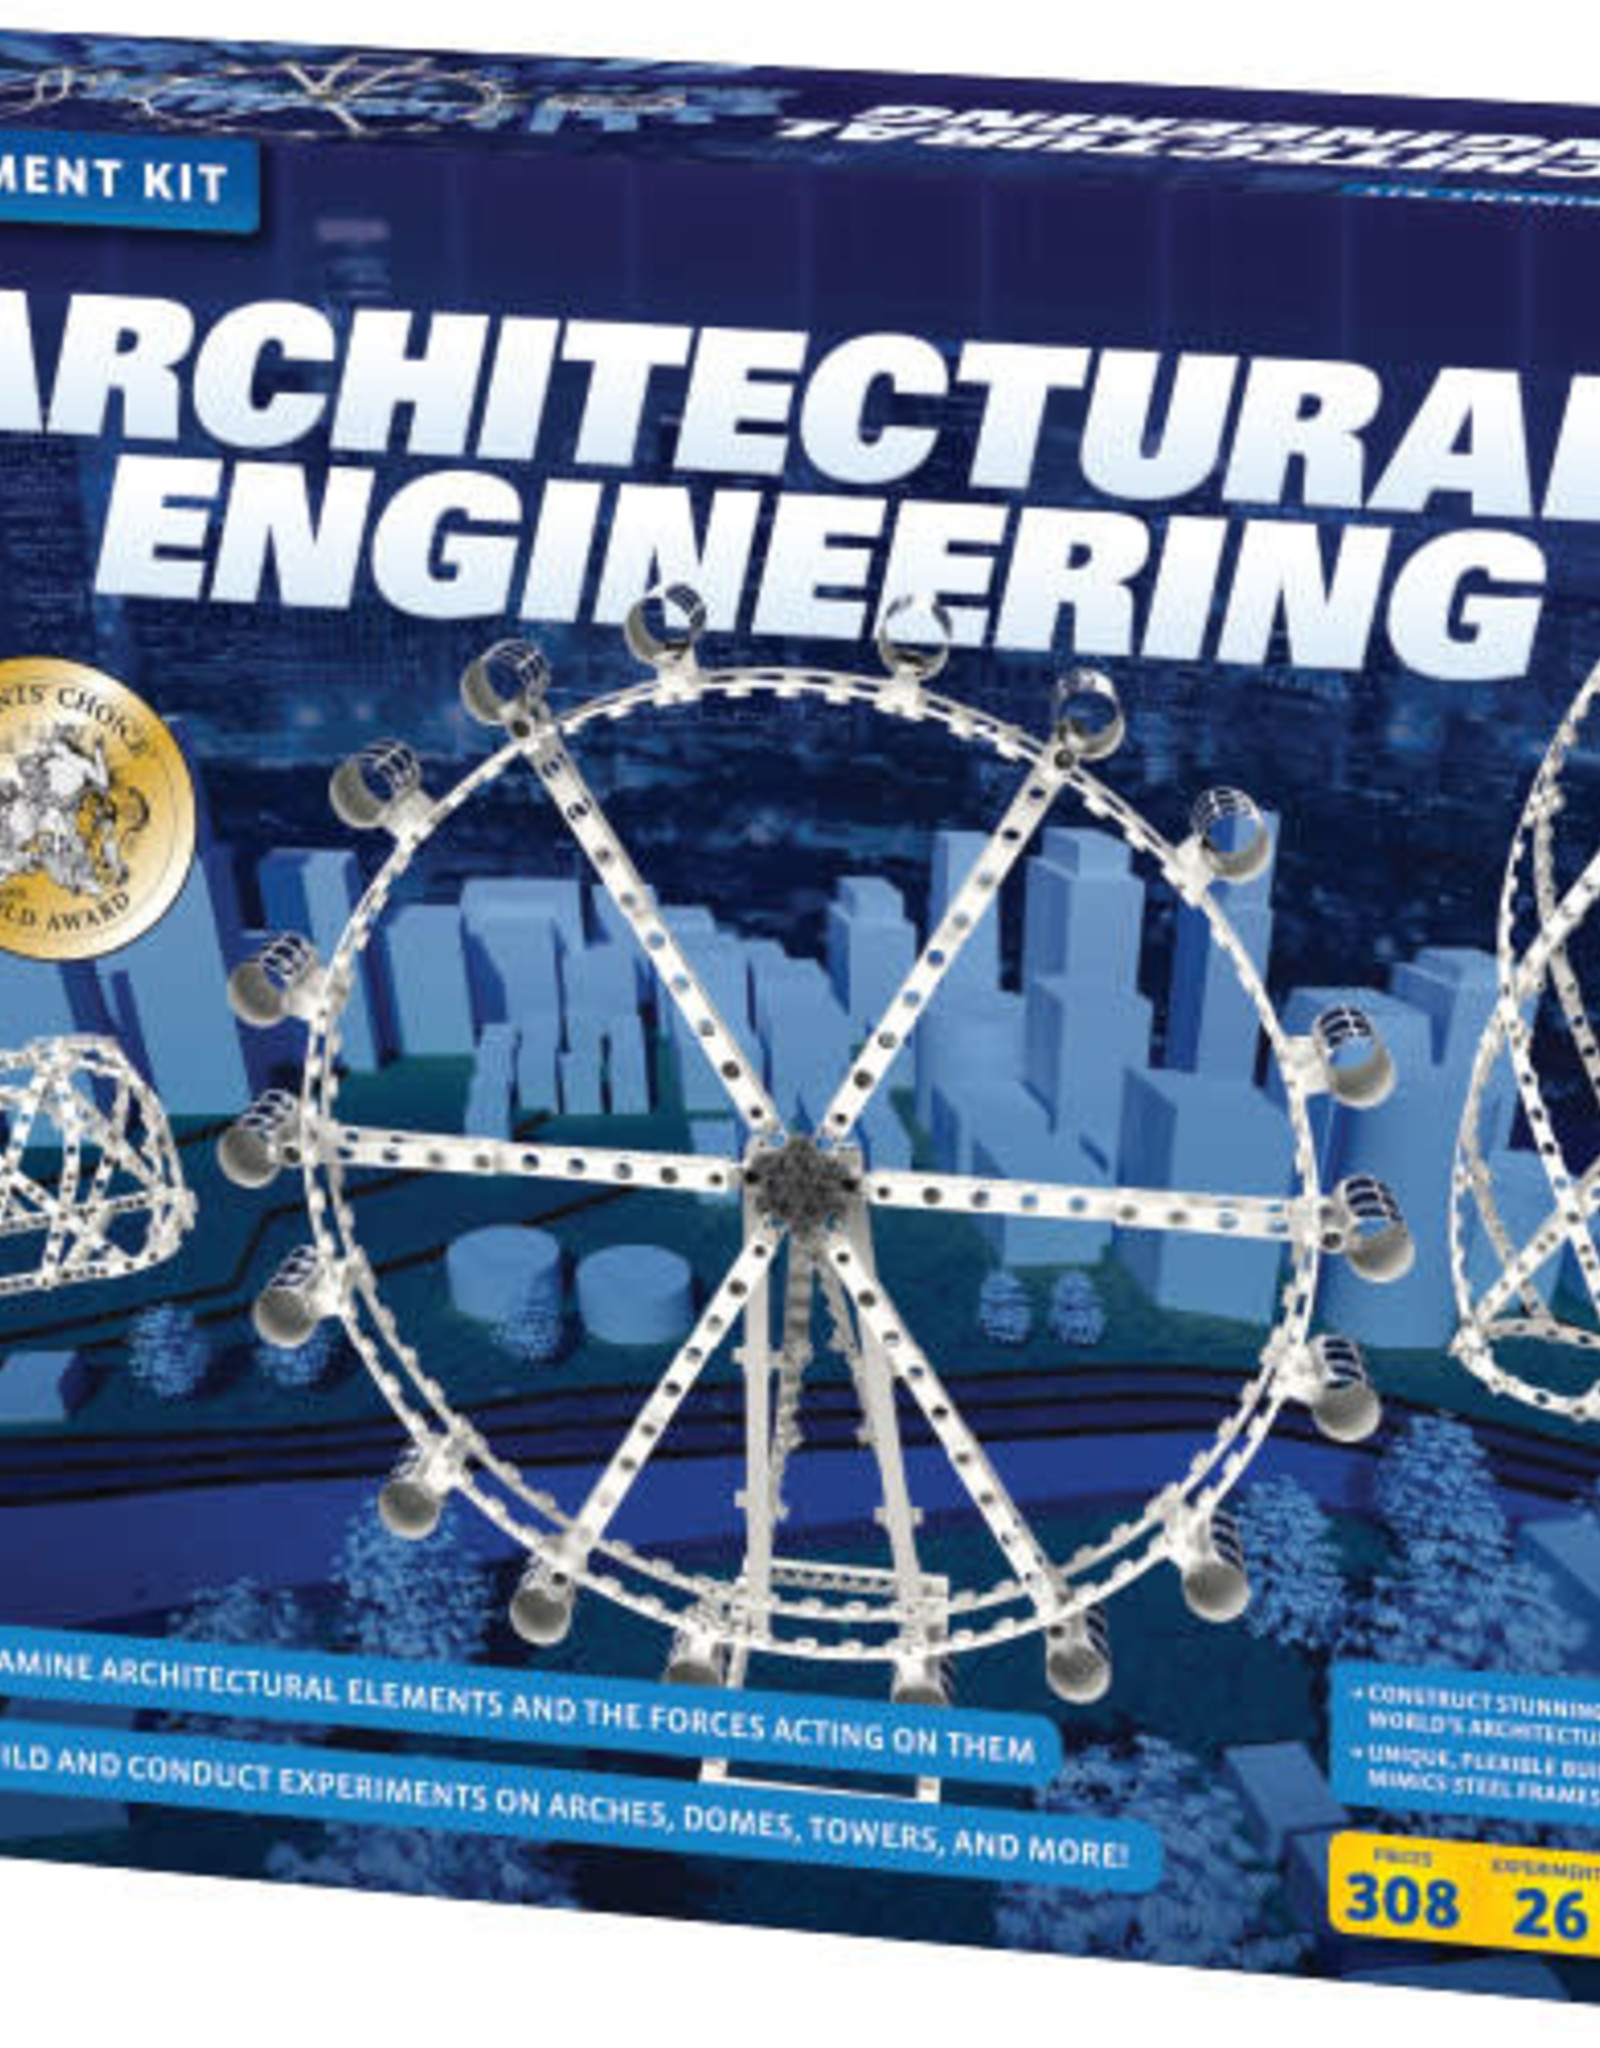 STEM EXPERIMENT KIT ARCHITECTURAL ENGINEERING